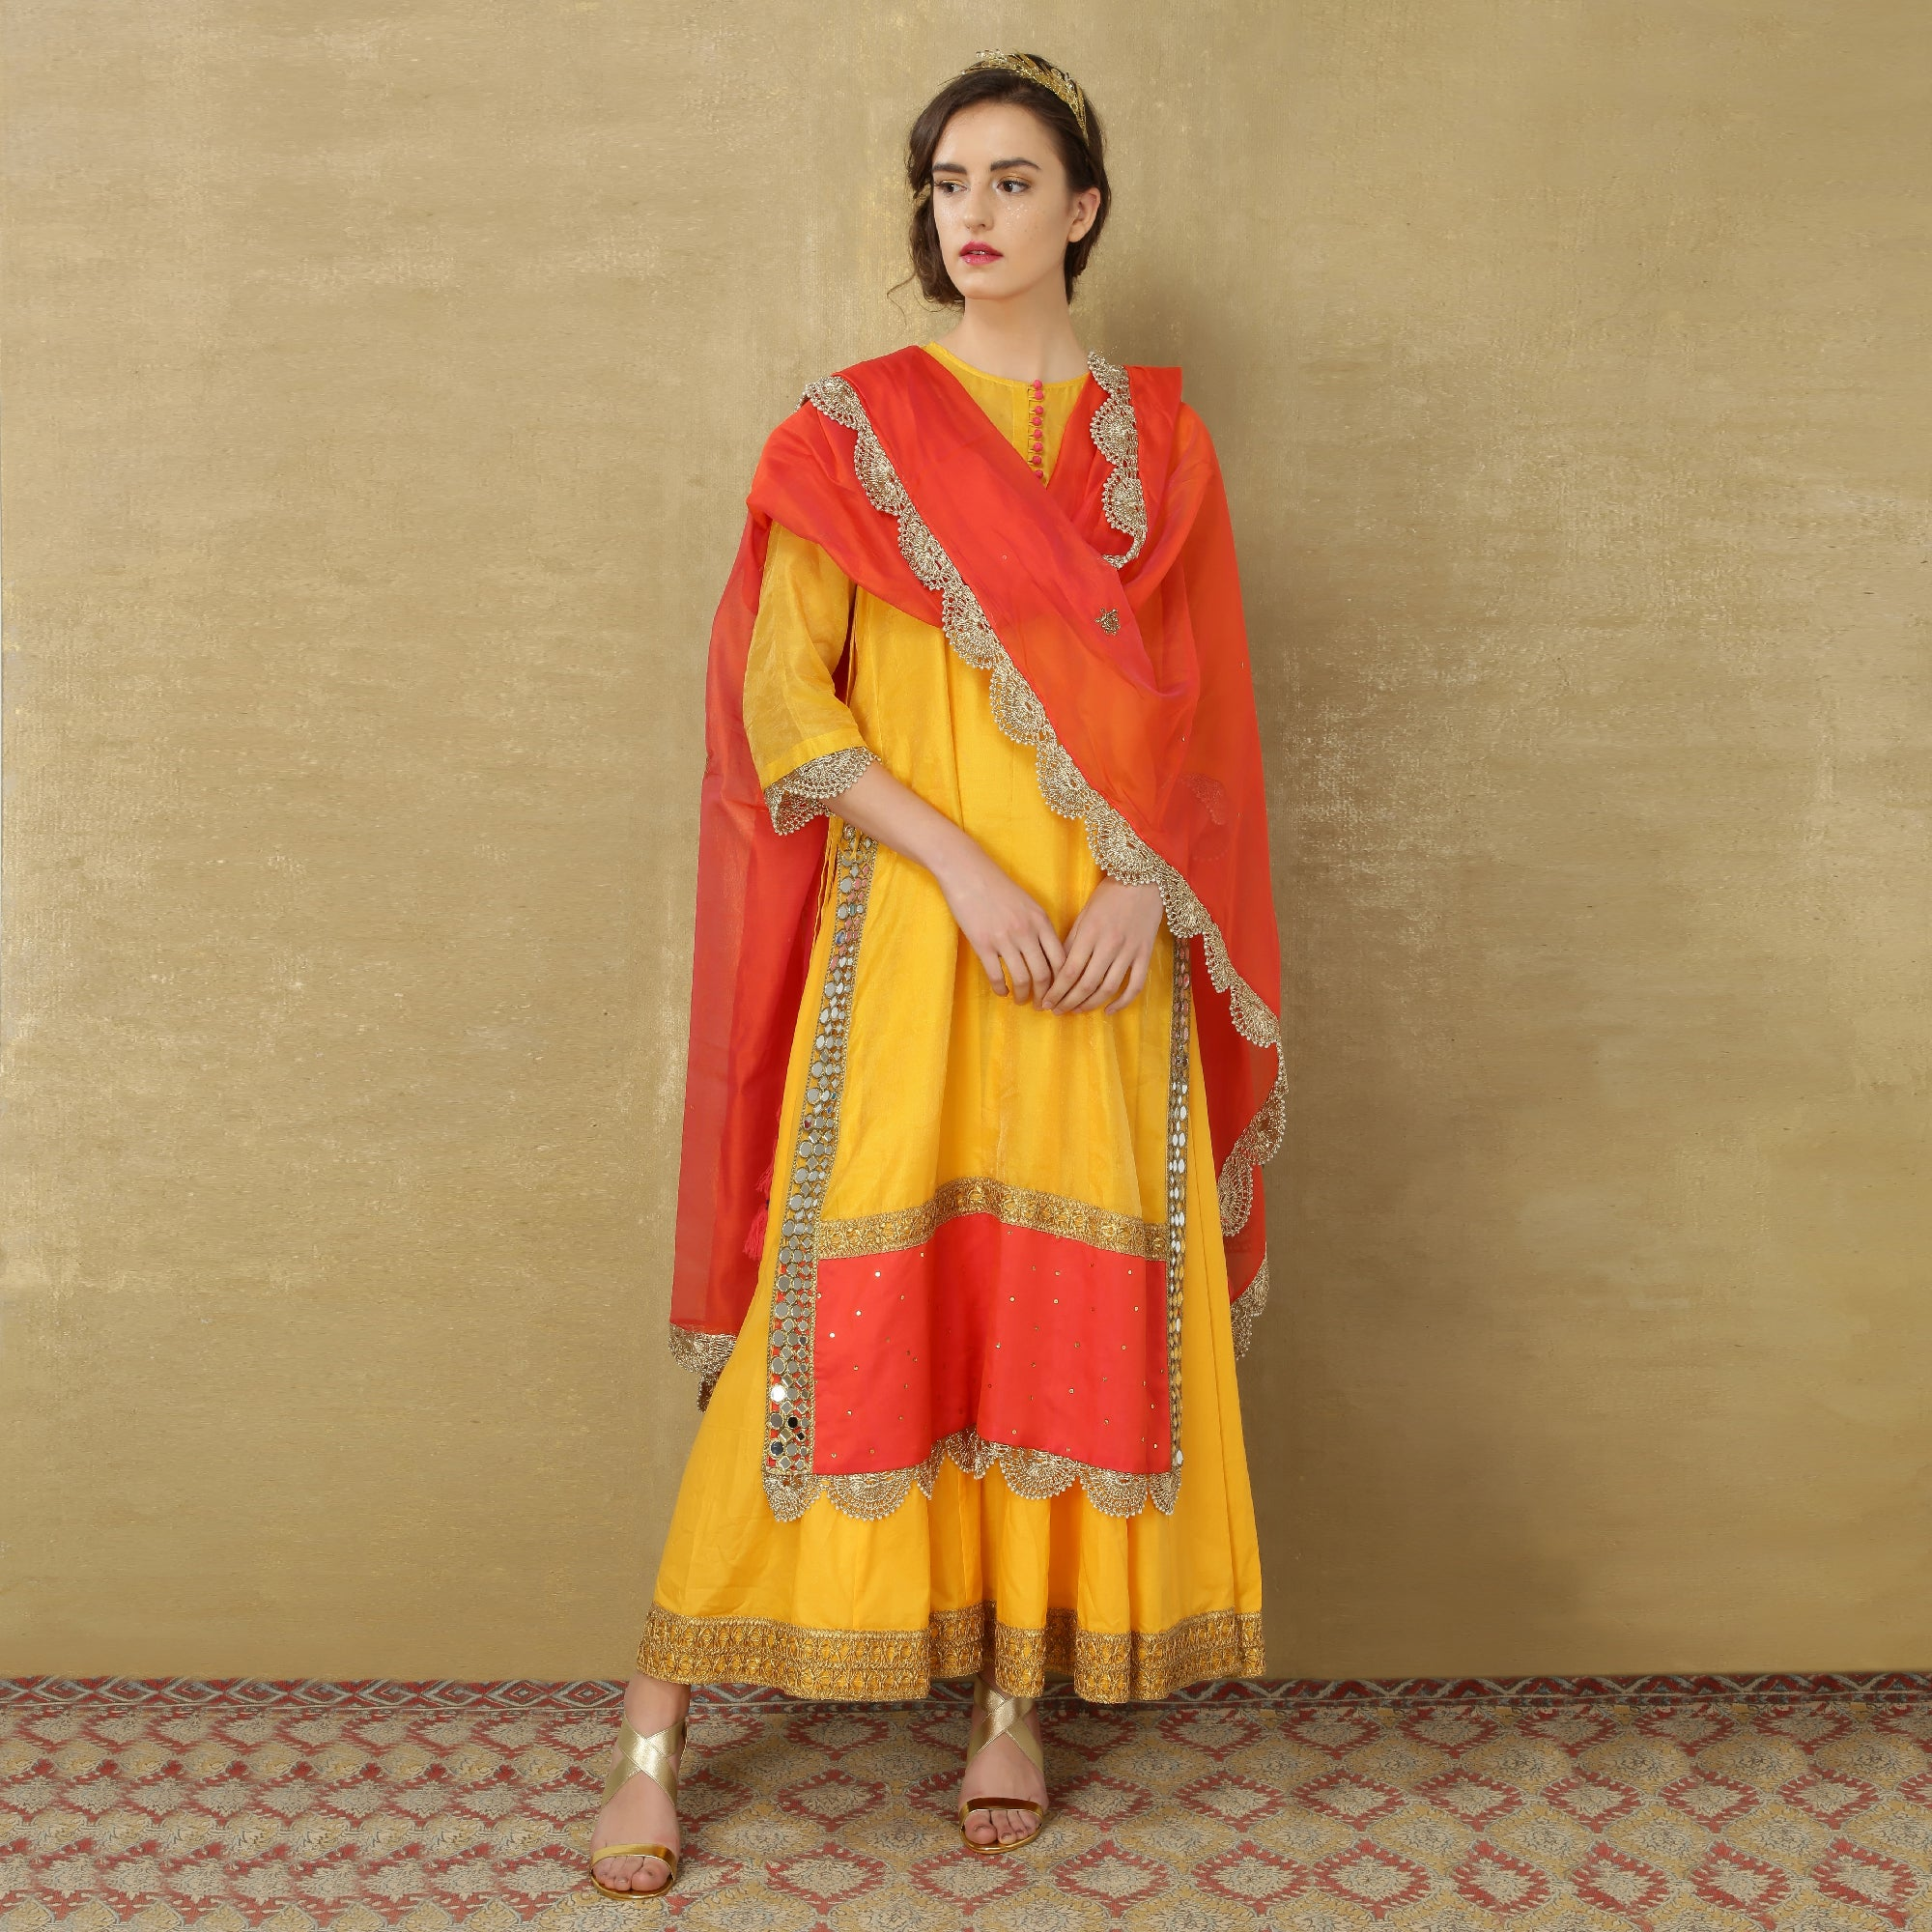 Uma Maxi - Marigold Yellow and Bright Orange